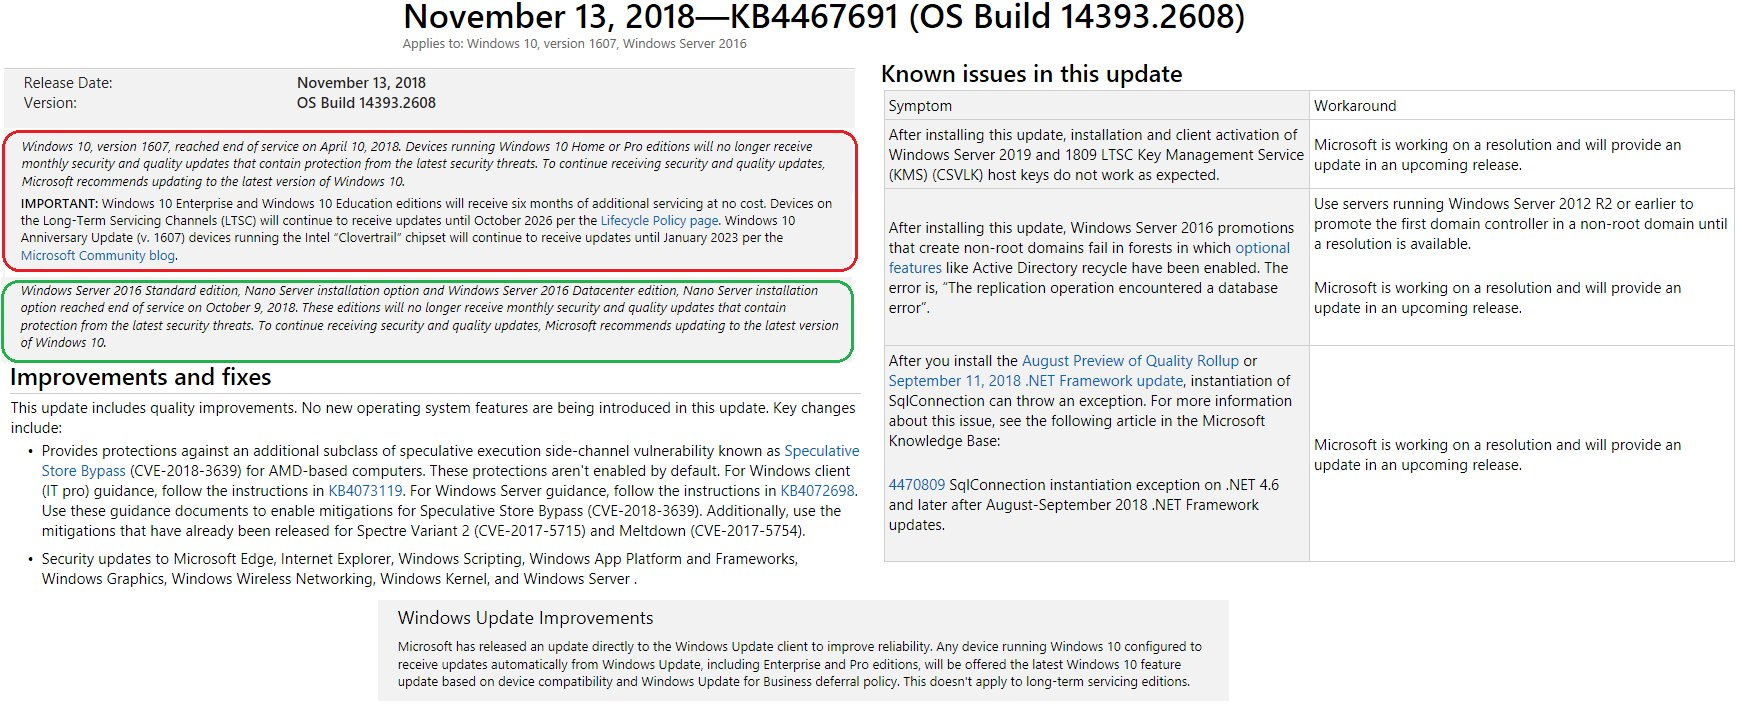 AIO ⁓ All Of The Latest Windows Update Problems September 2018